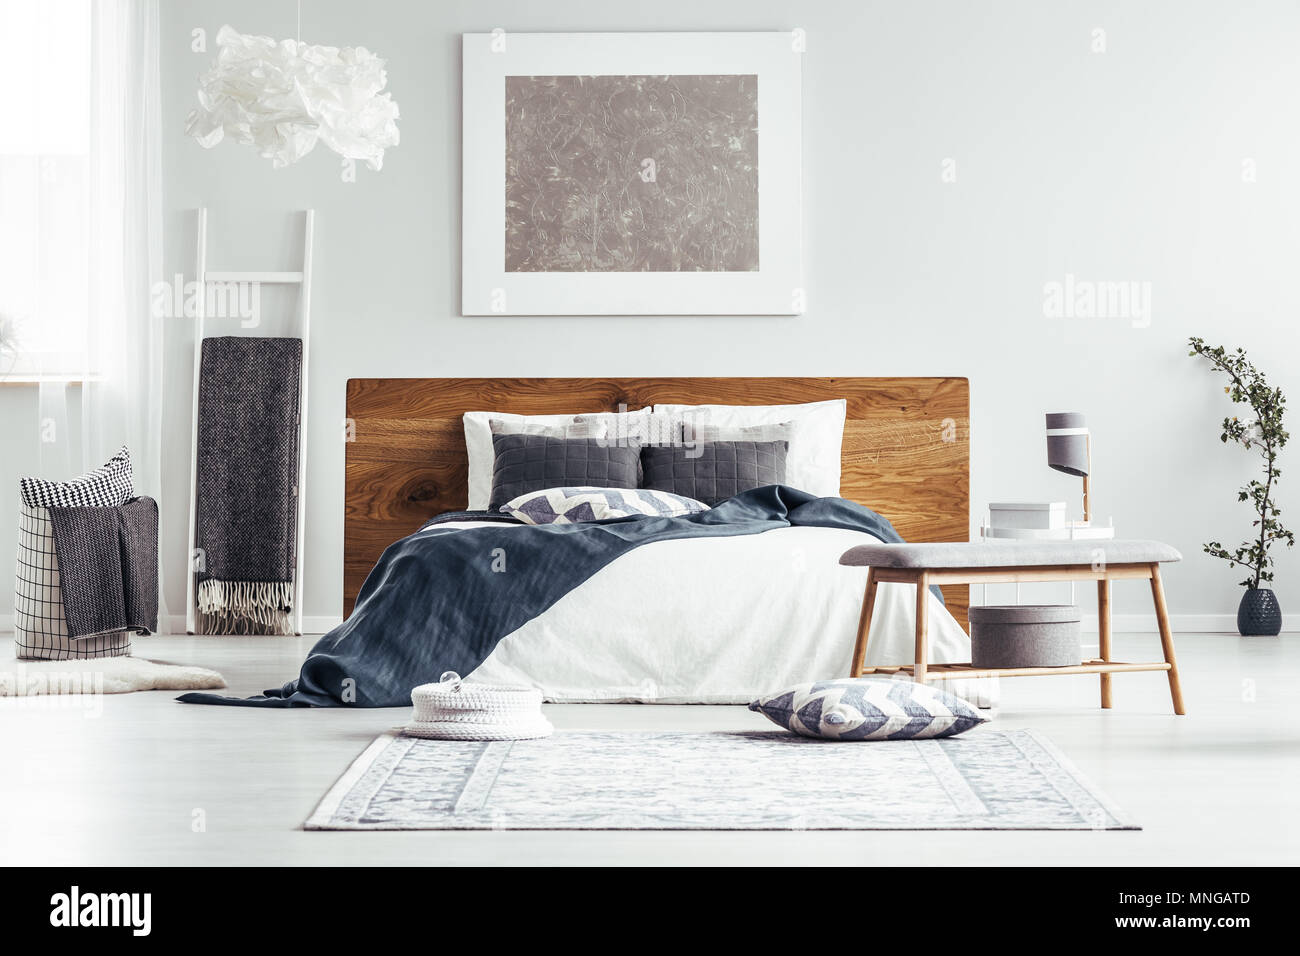 Silver Painting On White Wall Above Bed In Designer Bedroom Interior With Ladder Lamps And Bedsheets Stock Photo Alamy